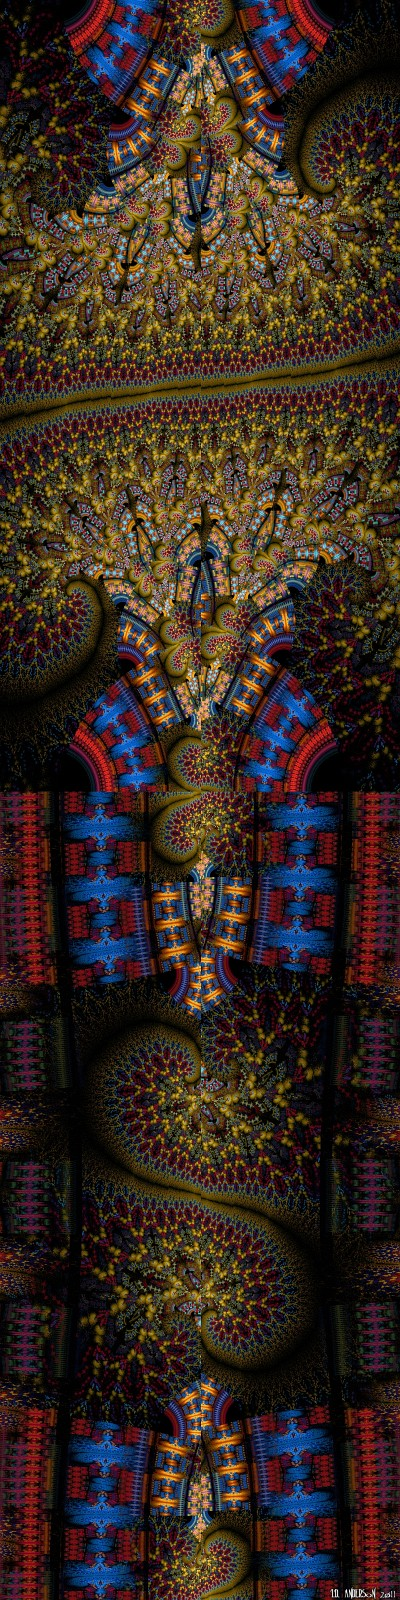 see 'Long fractal is long' at deviantART